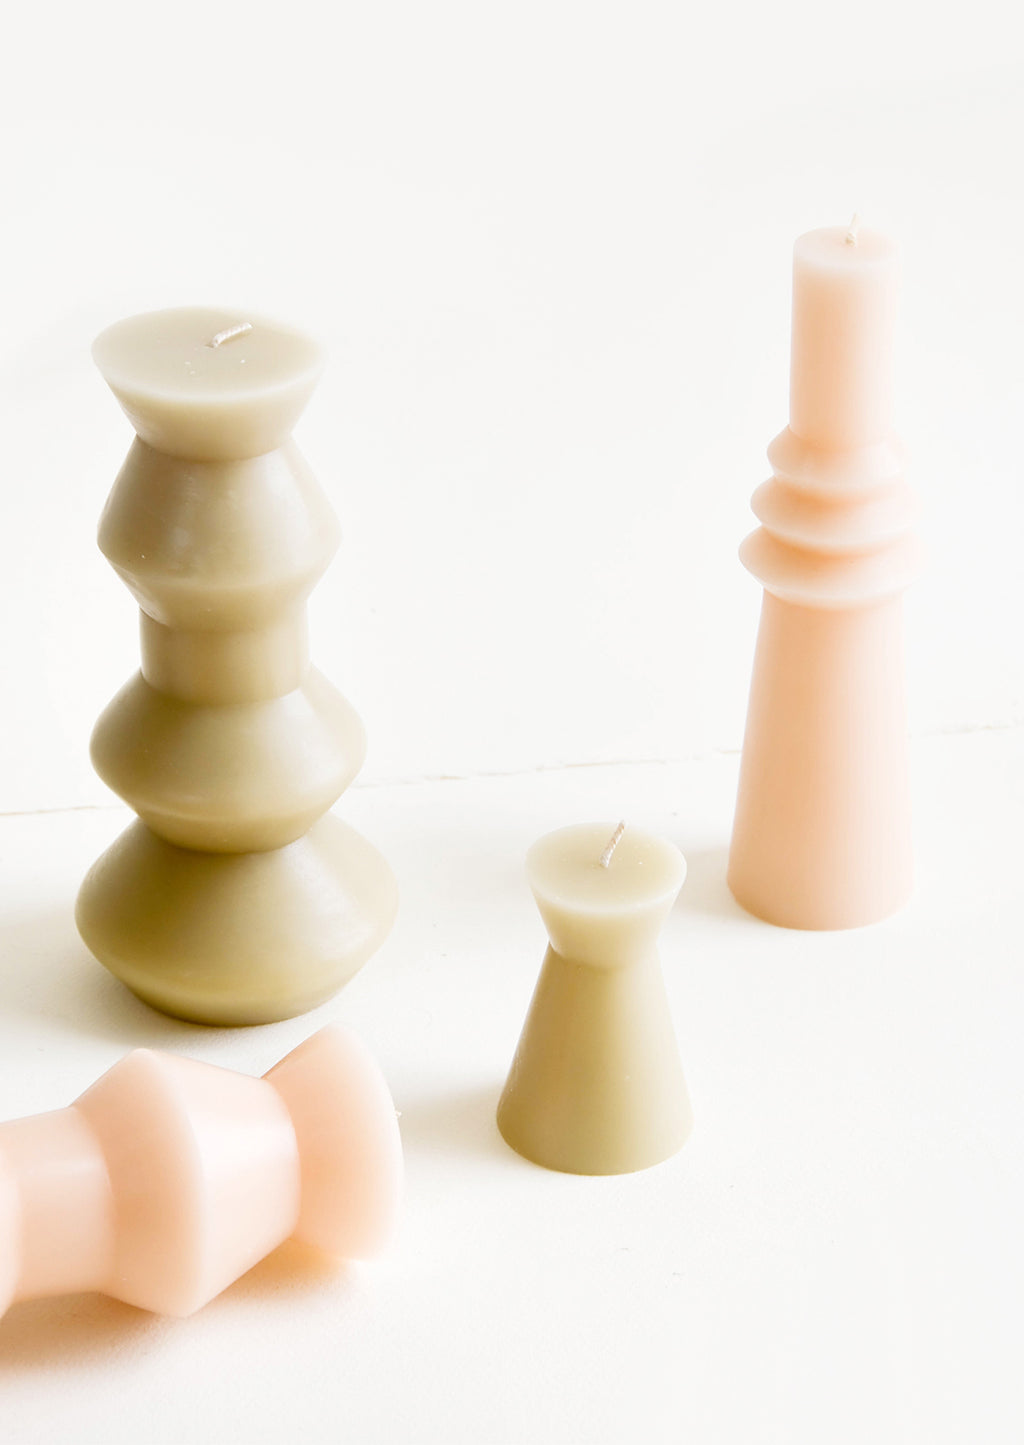 1: Shapely pillar candles in geometric forms, shown in a mix of shapes and sizes